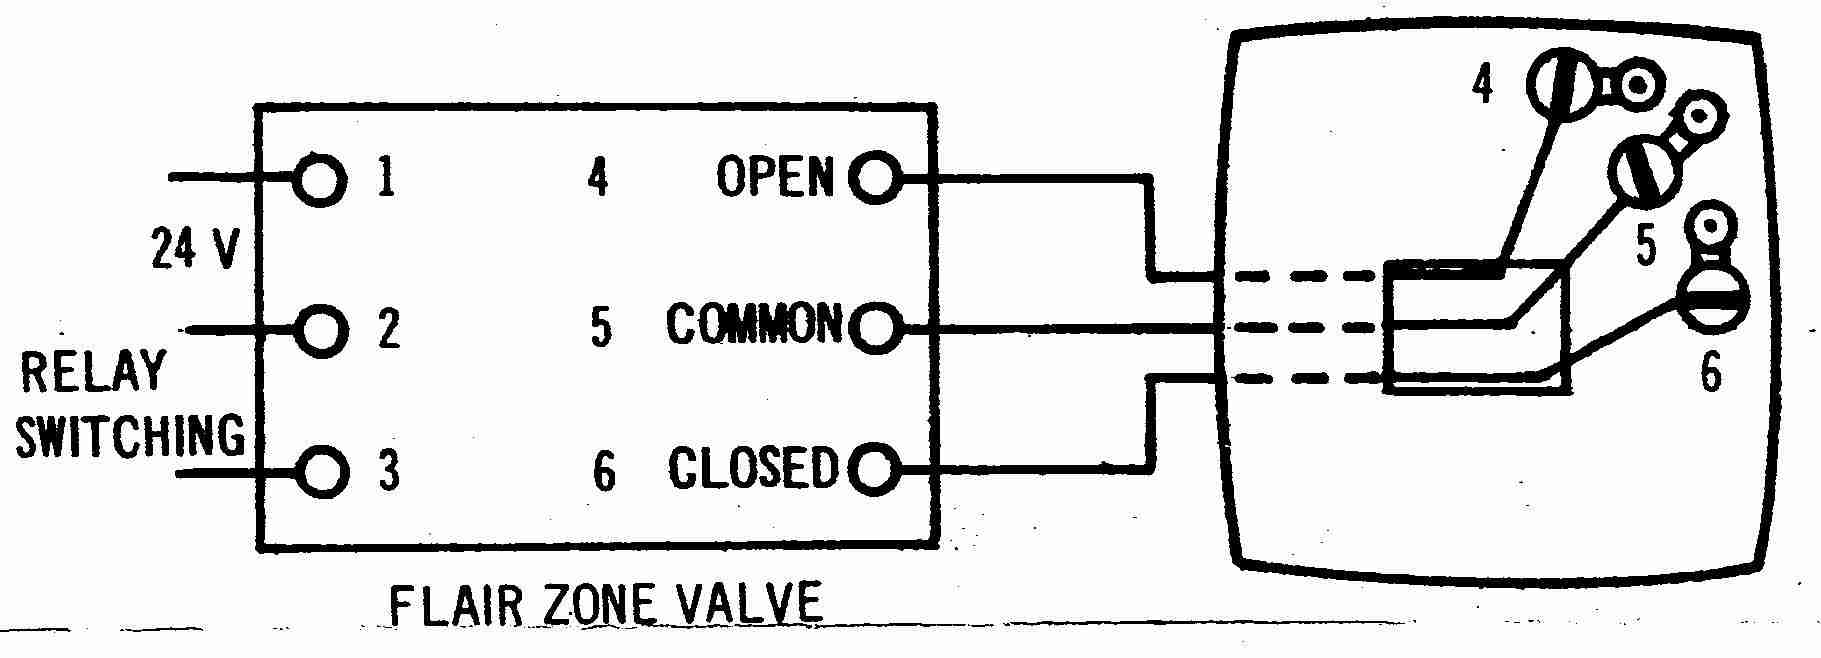 Flair3w_001_DJFc2 zone valve wiring installation & instructions guide to heating 4 wire thermostat wiring diagram heat only at mifinder.co